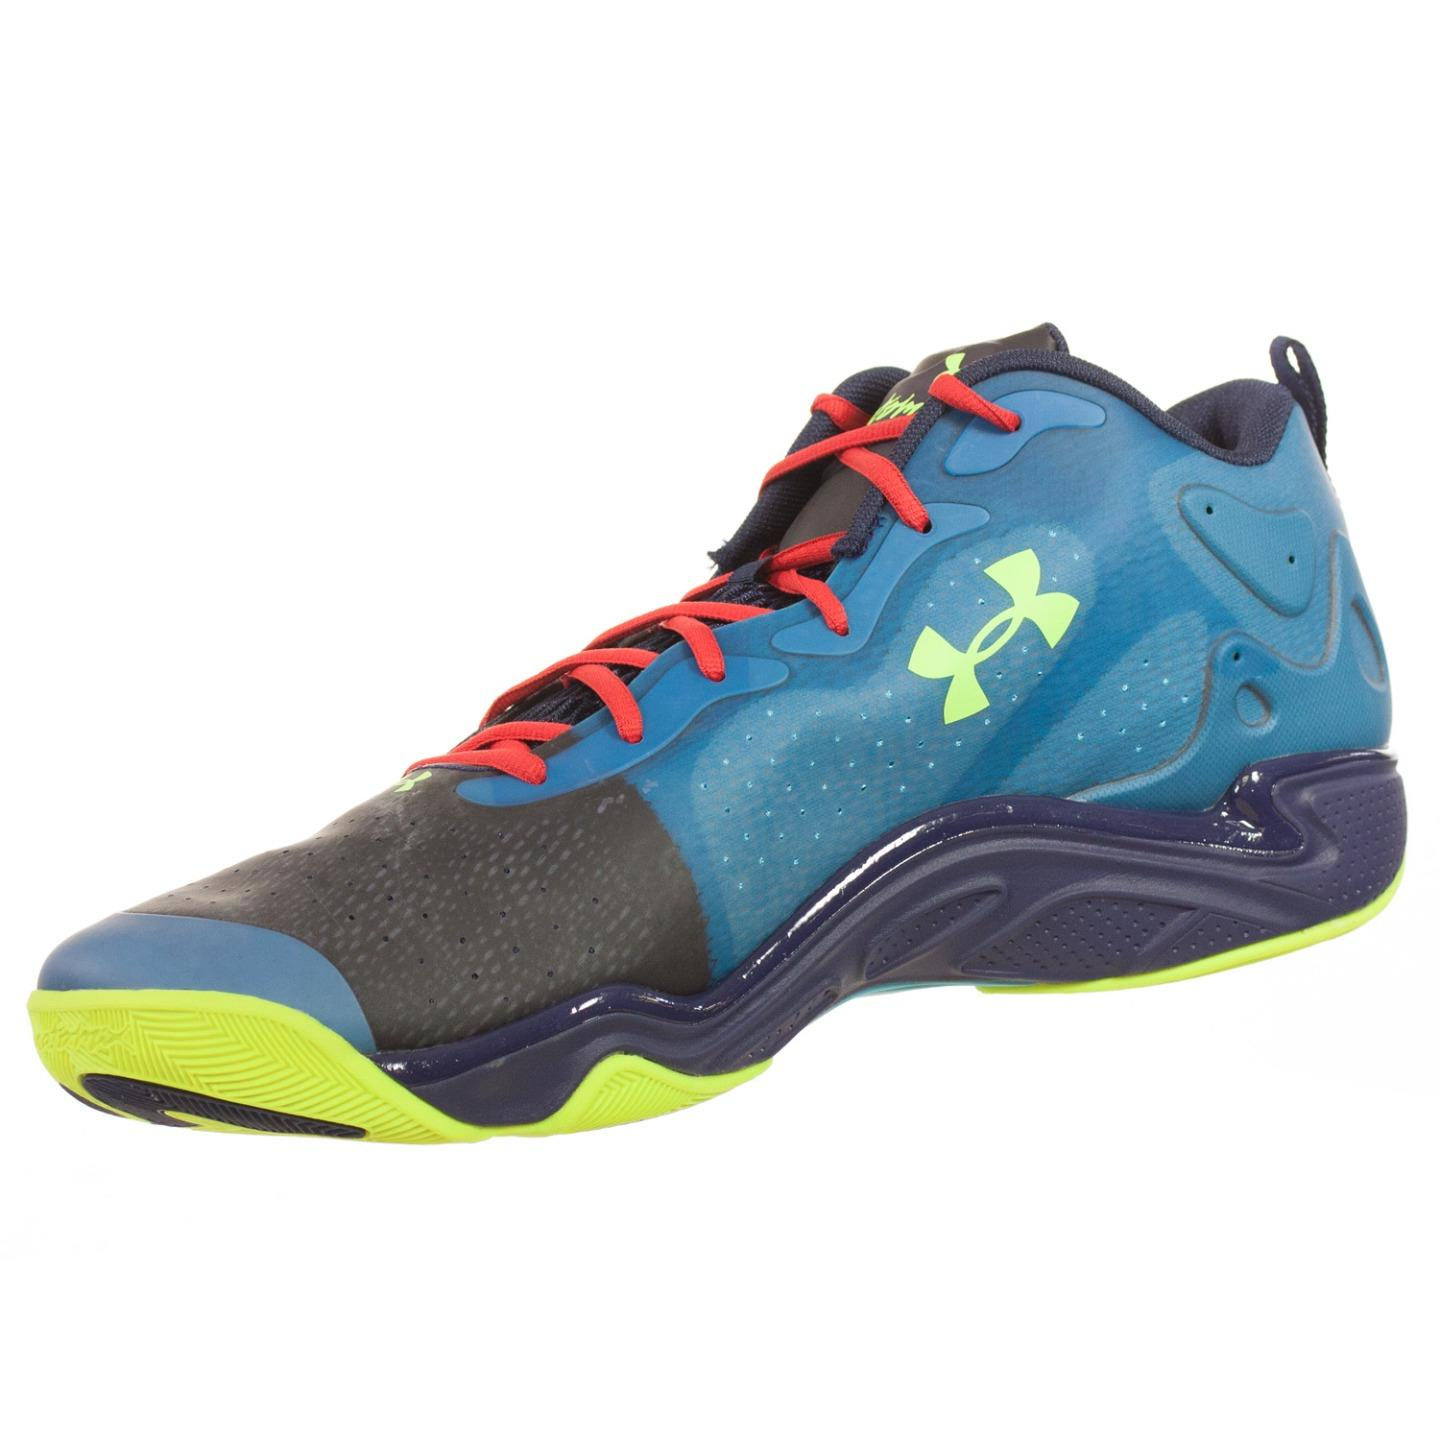 Under Armour MENS ATHLETIC SHOES MICRO G SPAWN LOW 2 BLUE BLACK NAVY YELLOW 19 M